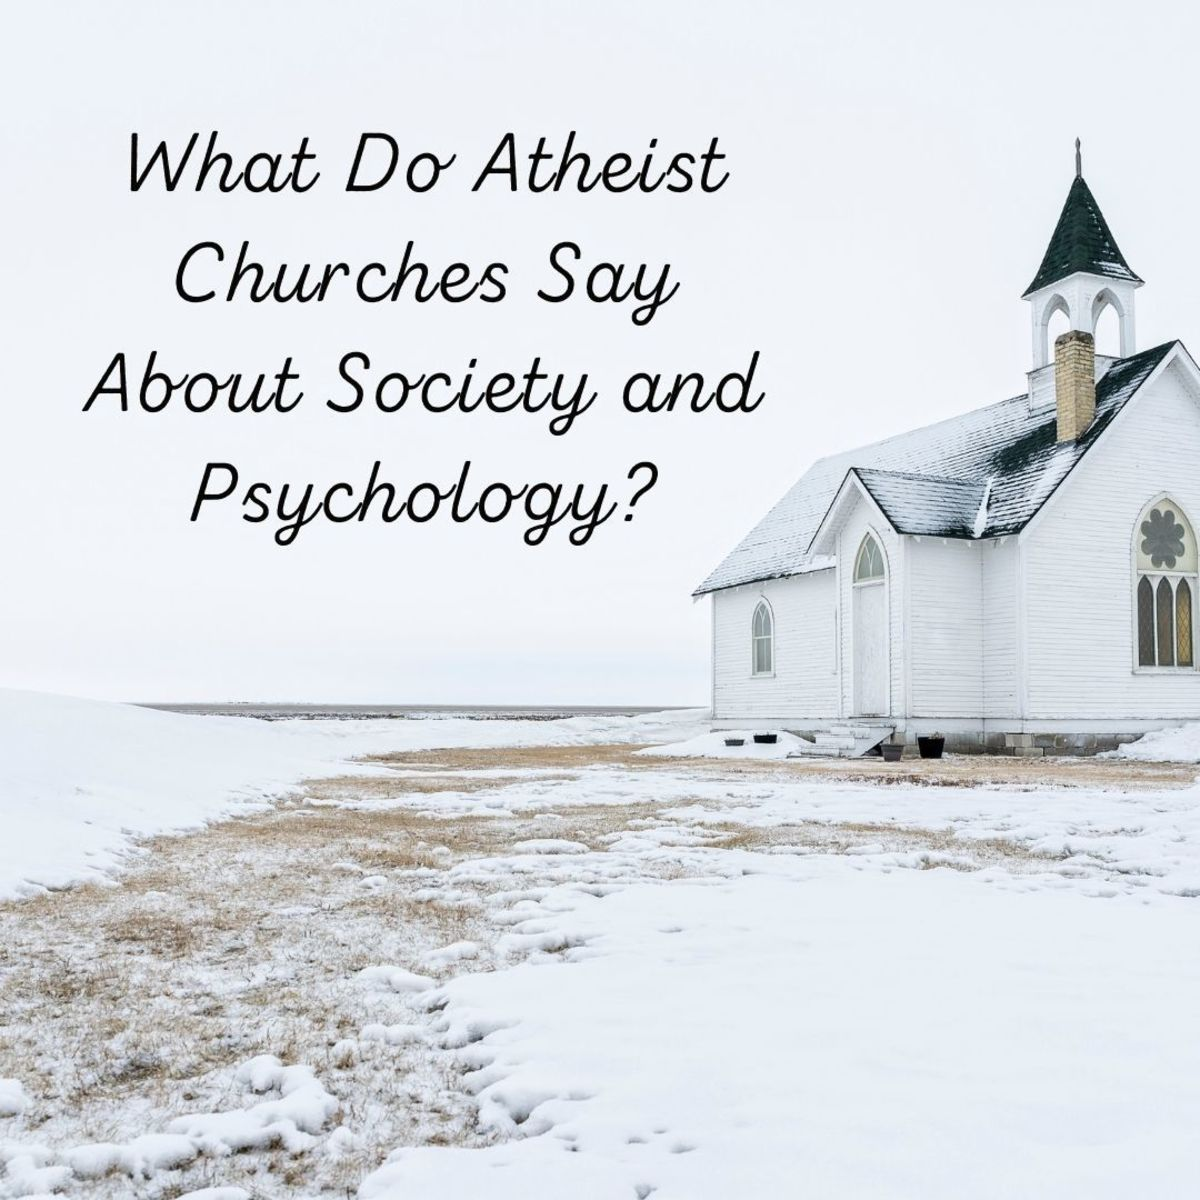 What is the significance of atheist churches?